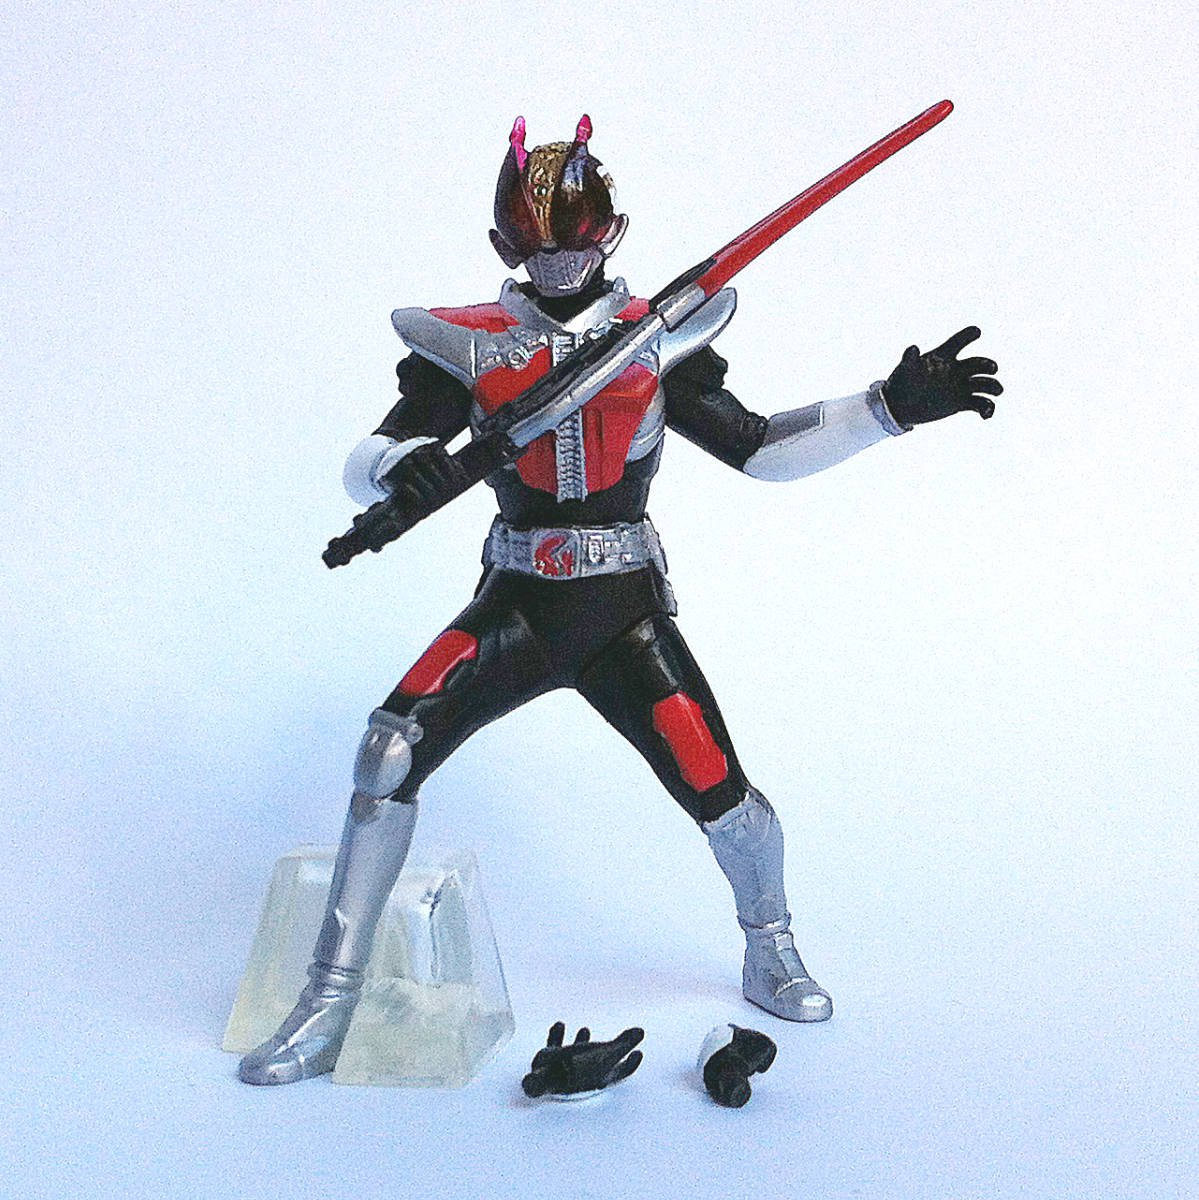 Kamen Rider Den-O Sword Form from HG Kamen Rider by Bandai